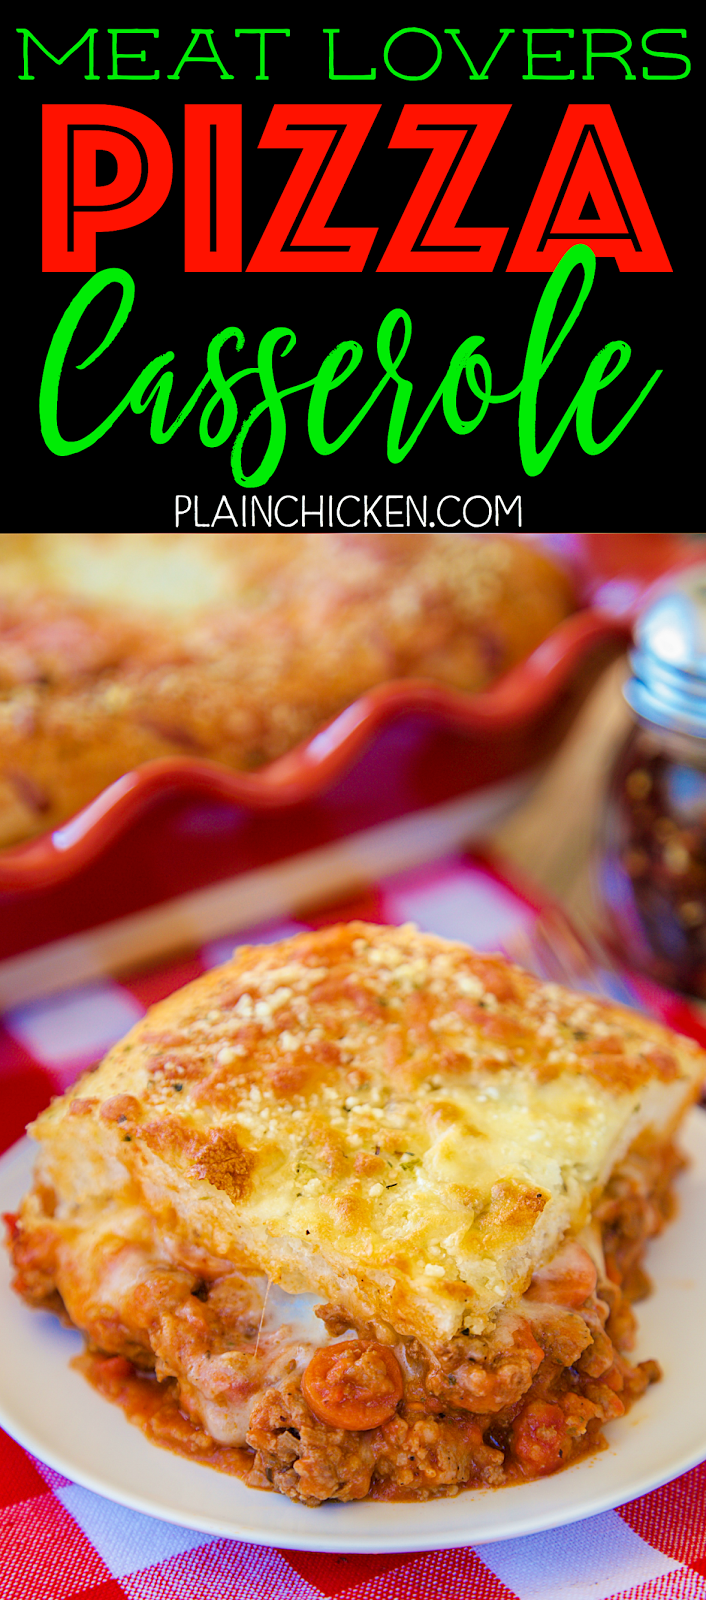 Meat Lovers Pizza Casserole | Plain Chicken